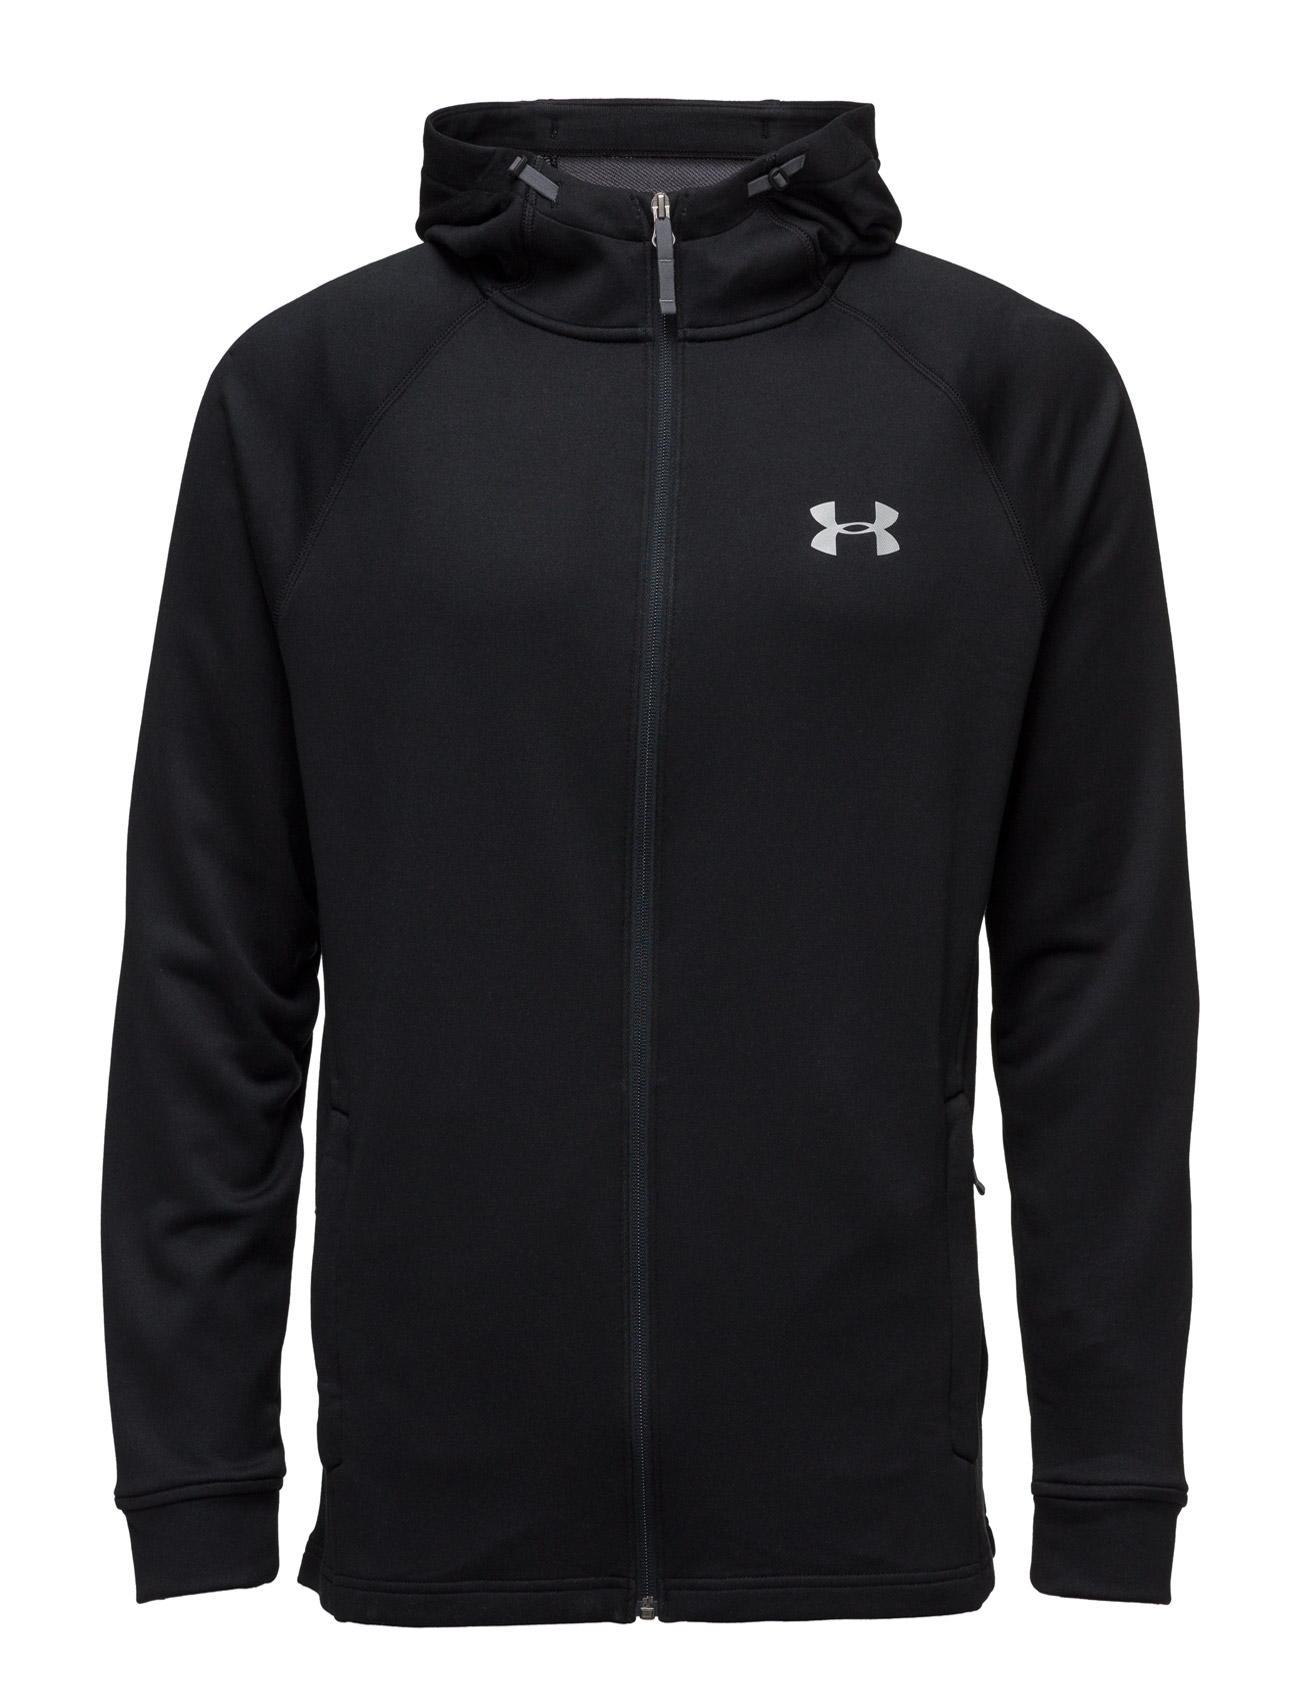 Tech Terry Fitted Fz Hoodie Under Armour Sports sweatshirts til Herrer i Sort